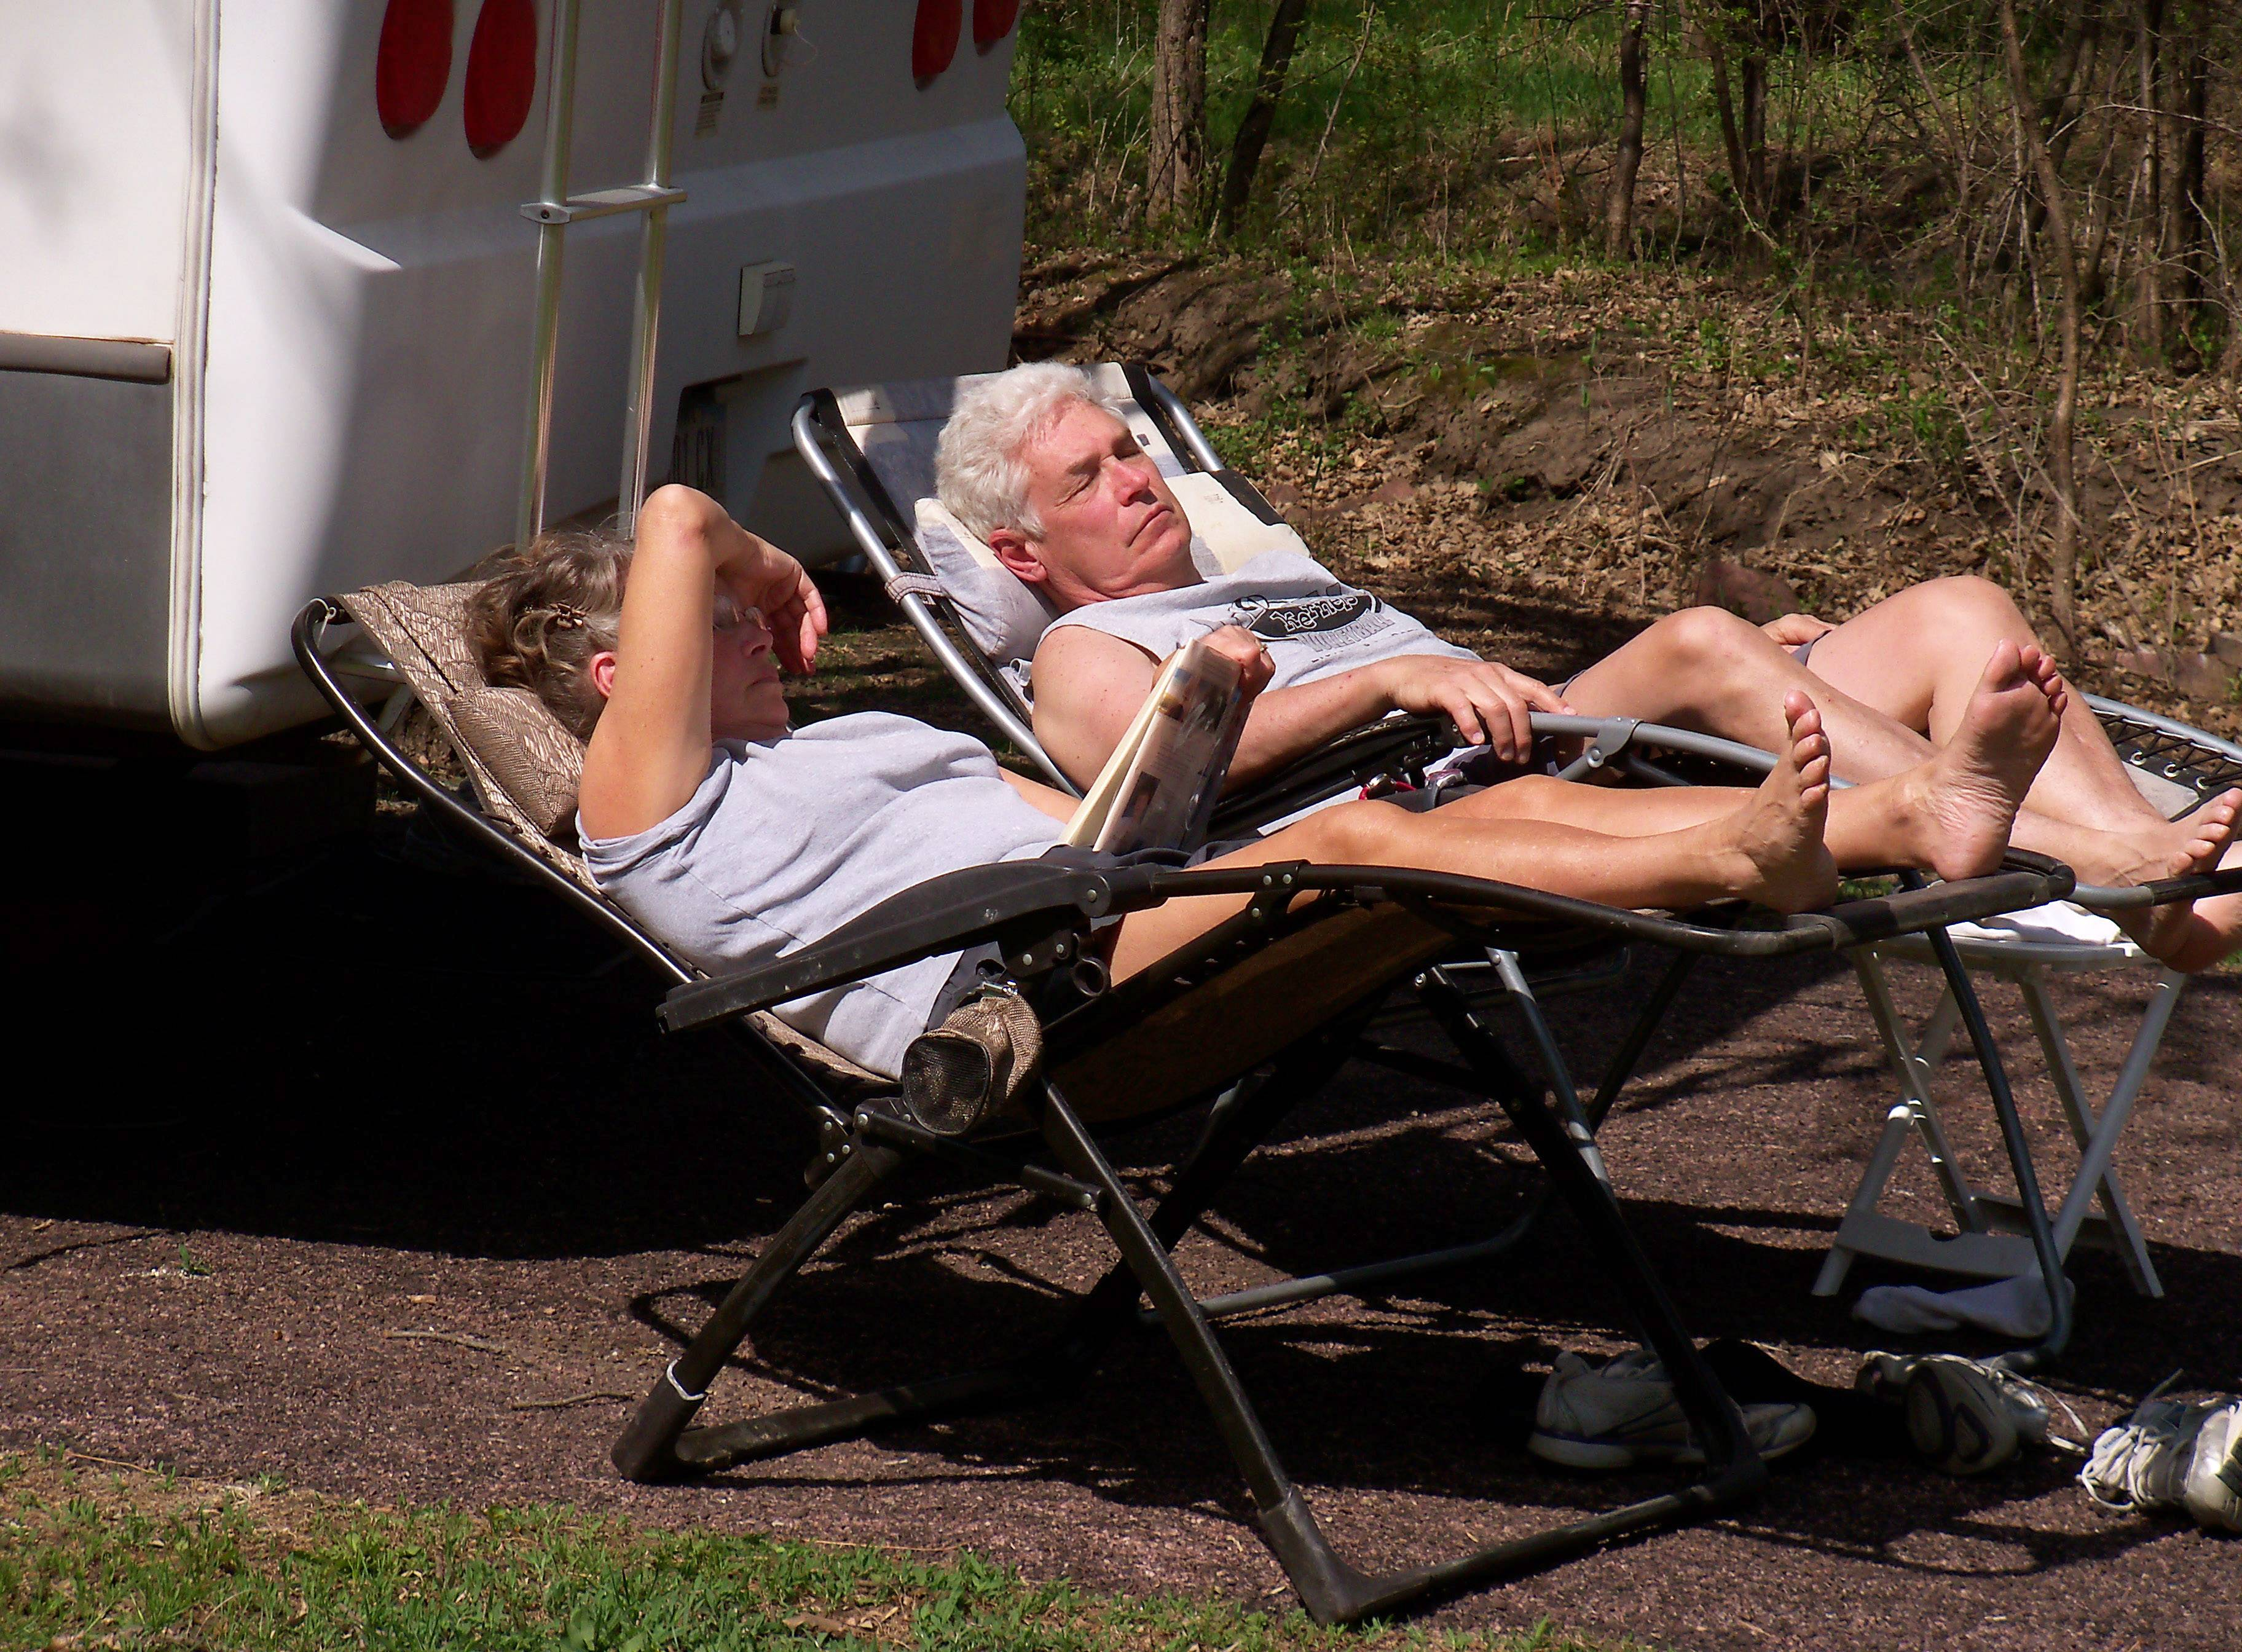 Patricia Zwart of Larchwood, Iowa, reads a book while her husband relaxes next to their camper in Palisades State Park in South Dakota near the Minnesota border. The Zwarts are among a number of Americans enjoying early season camping after a brutal winter.